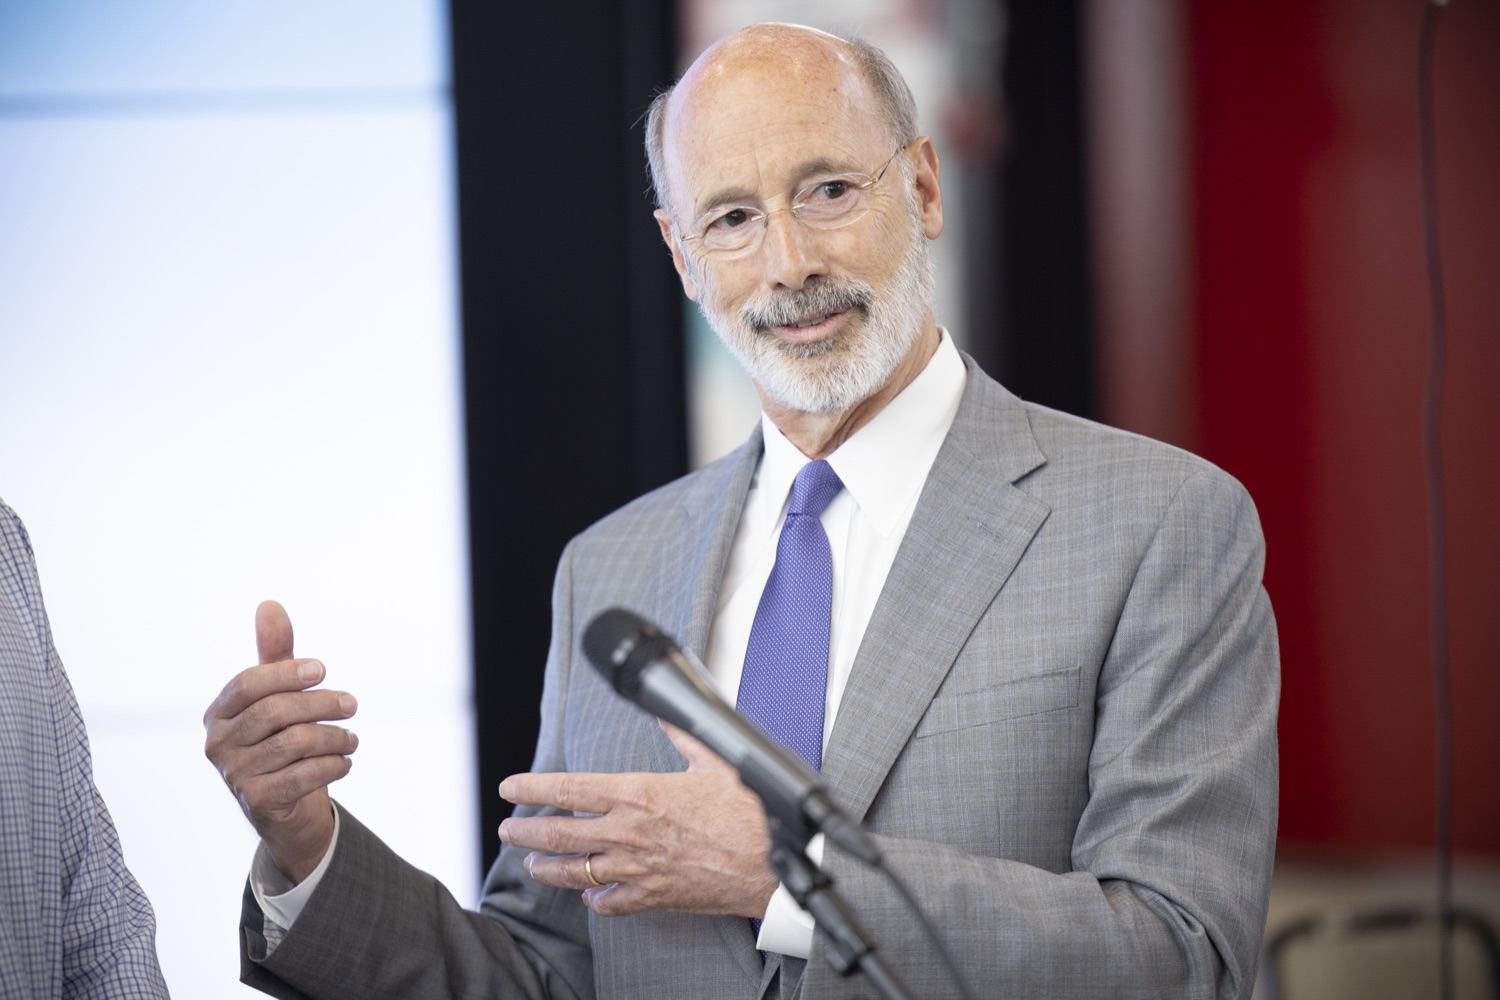 """<a href=""""https://filesource.wostreaming.net/commonwealthofpa/photo/18941_gov_economicDevelopment_dz_012.jpg"""" target=""""_blank"""">⇣Download Photo<br></a>Pennsylvania Governor Tom Wolf speaking with the press.  Governor Tom Wolf today visited Factory LLC in Bethlehem to tour the facility and highlight the importance of investing in Pennsylvanias start-up companies. During the visit, he met with companies affiliated with Factory, including Stuffed Puffs®, which received a $1 million funding proposal from the commonwealth in 2019 to expand its manufacturing operations and create jobs, Mikeys®, Pipcorn®, Honey Stinger®, and ROAR® Organic. Bethlehem, PA  July 19, 2021"""